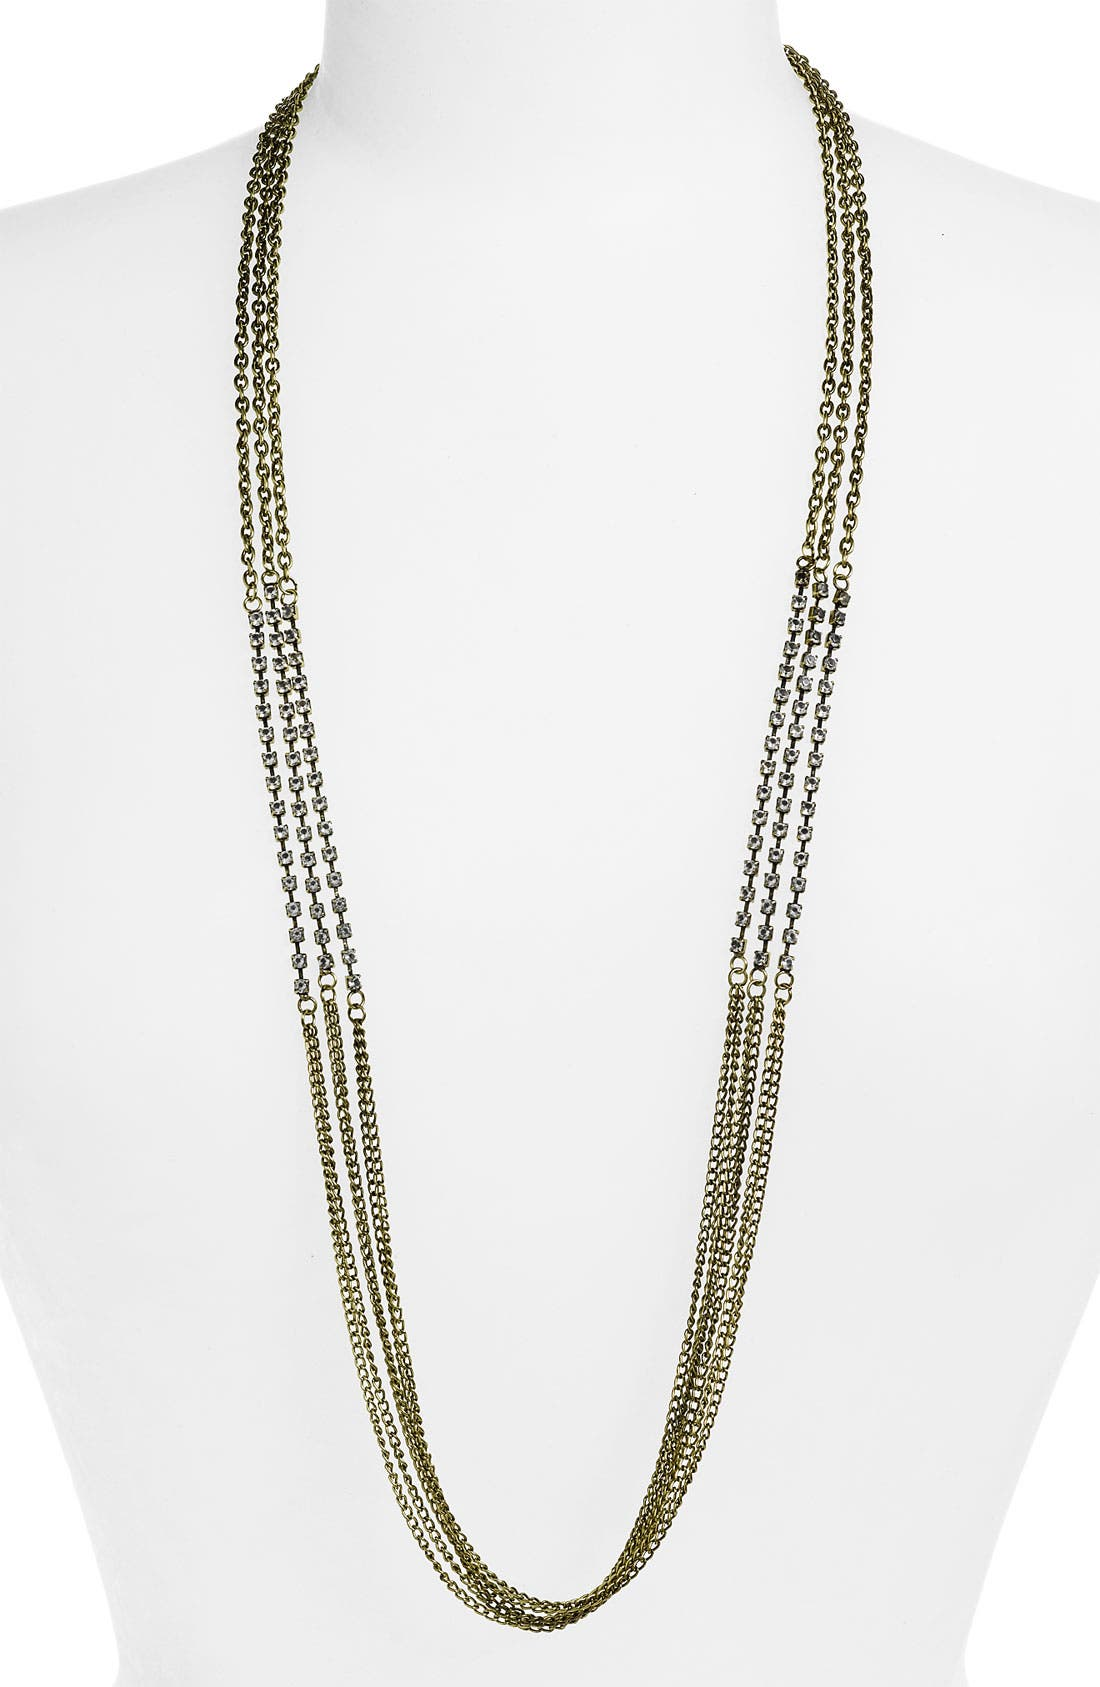 Main Image - Stephan & Co. Triple Row Chain & Rhinestone Necklace